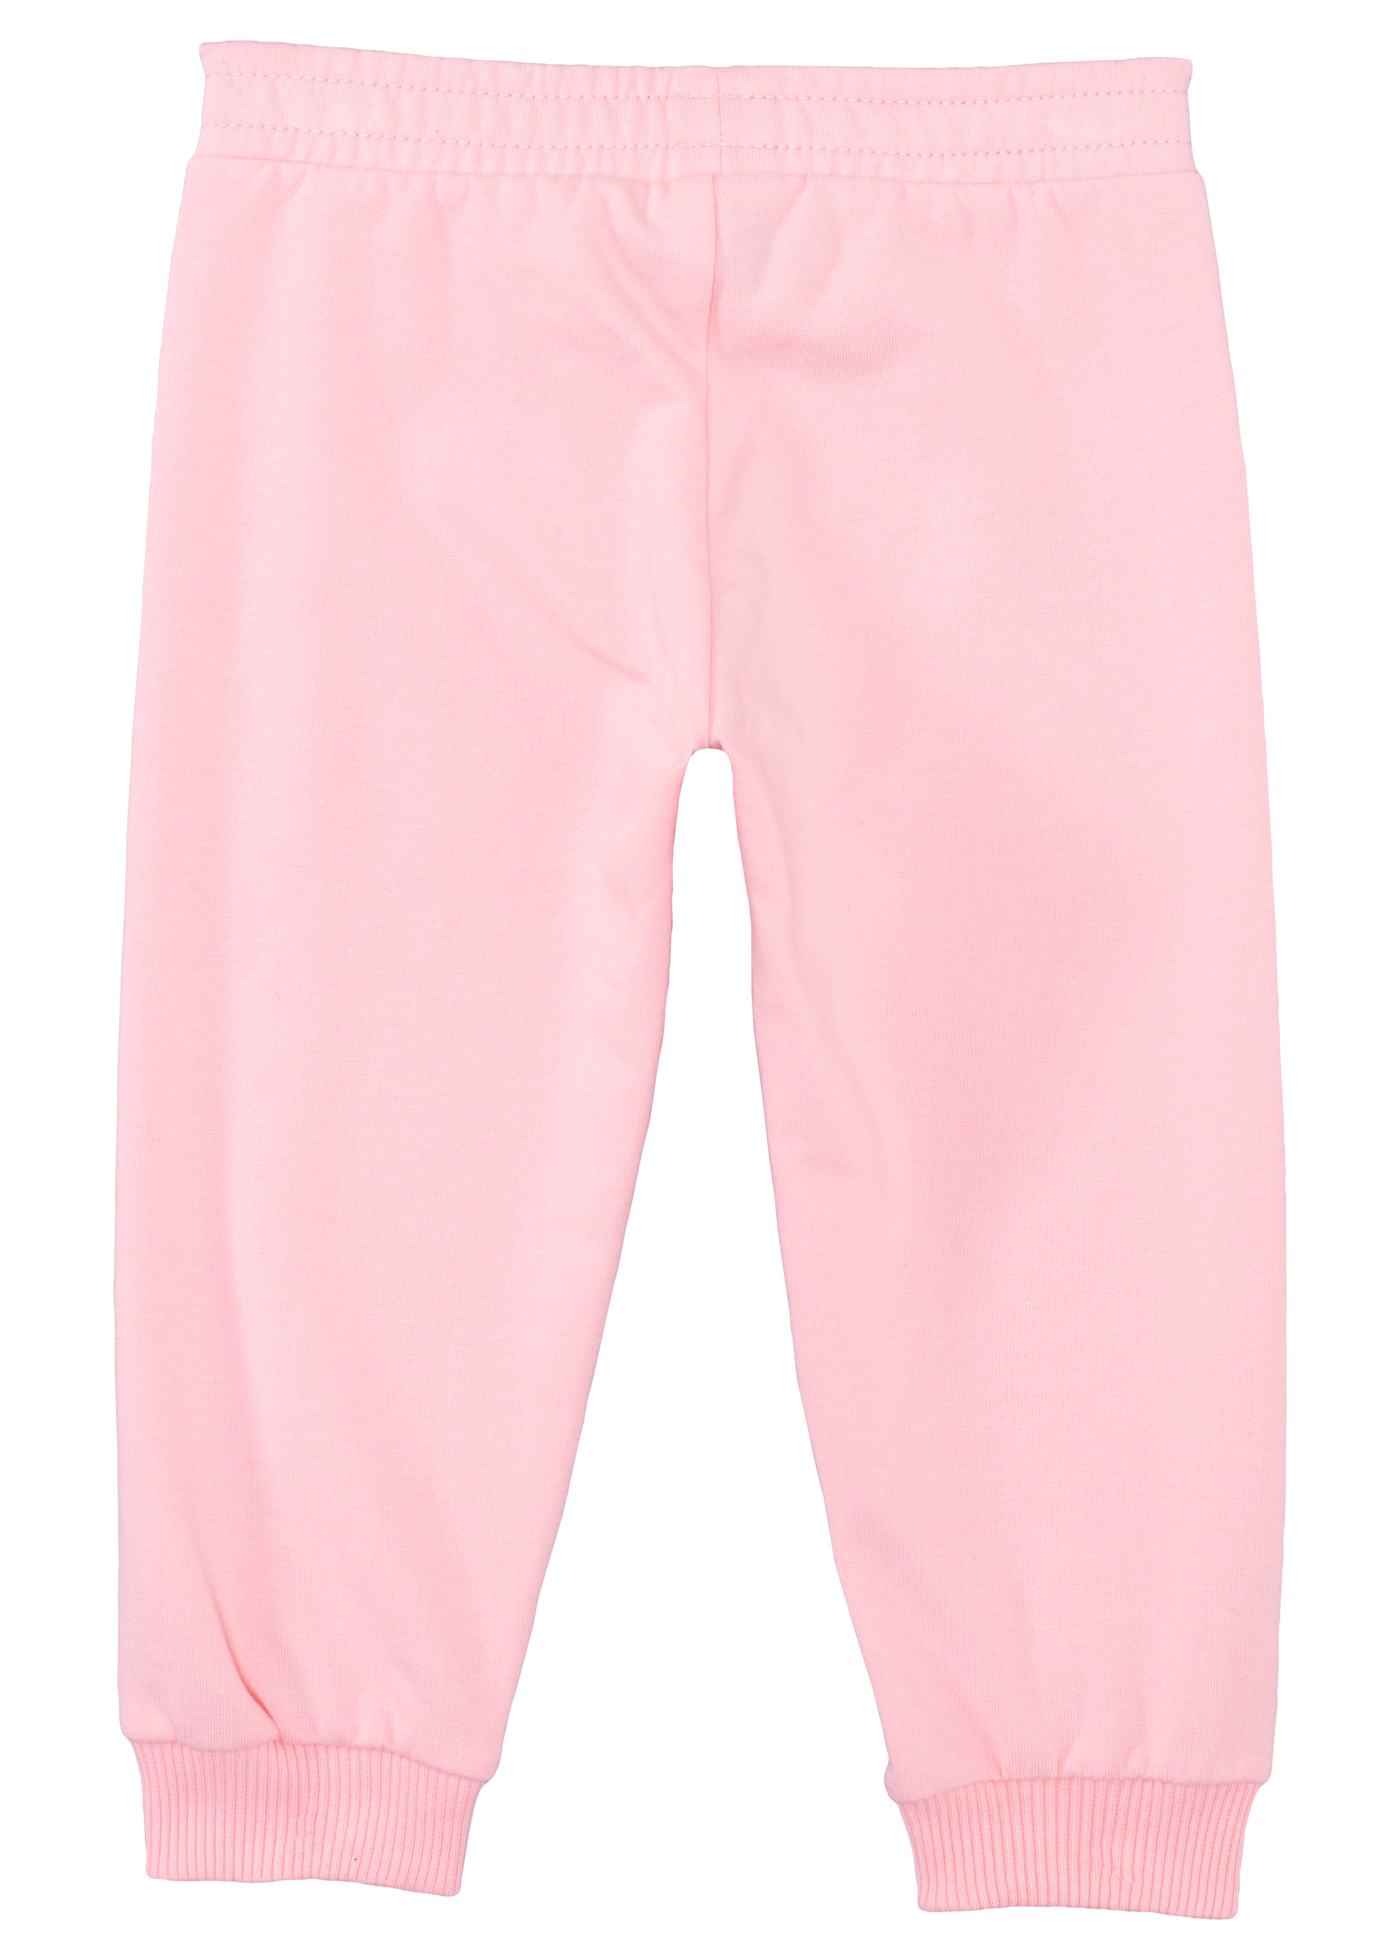 MOSCHINO Trouser image number 1